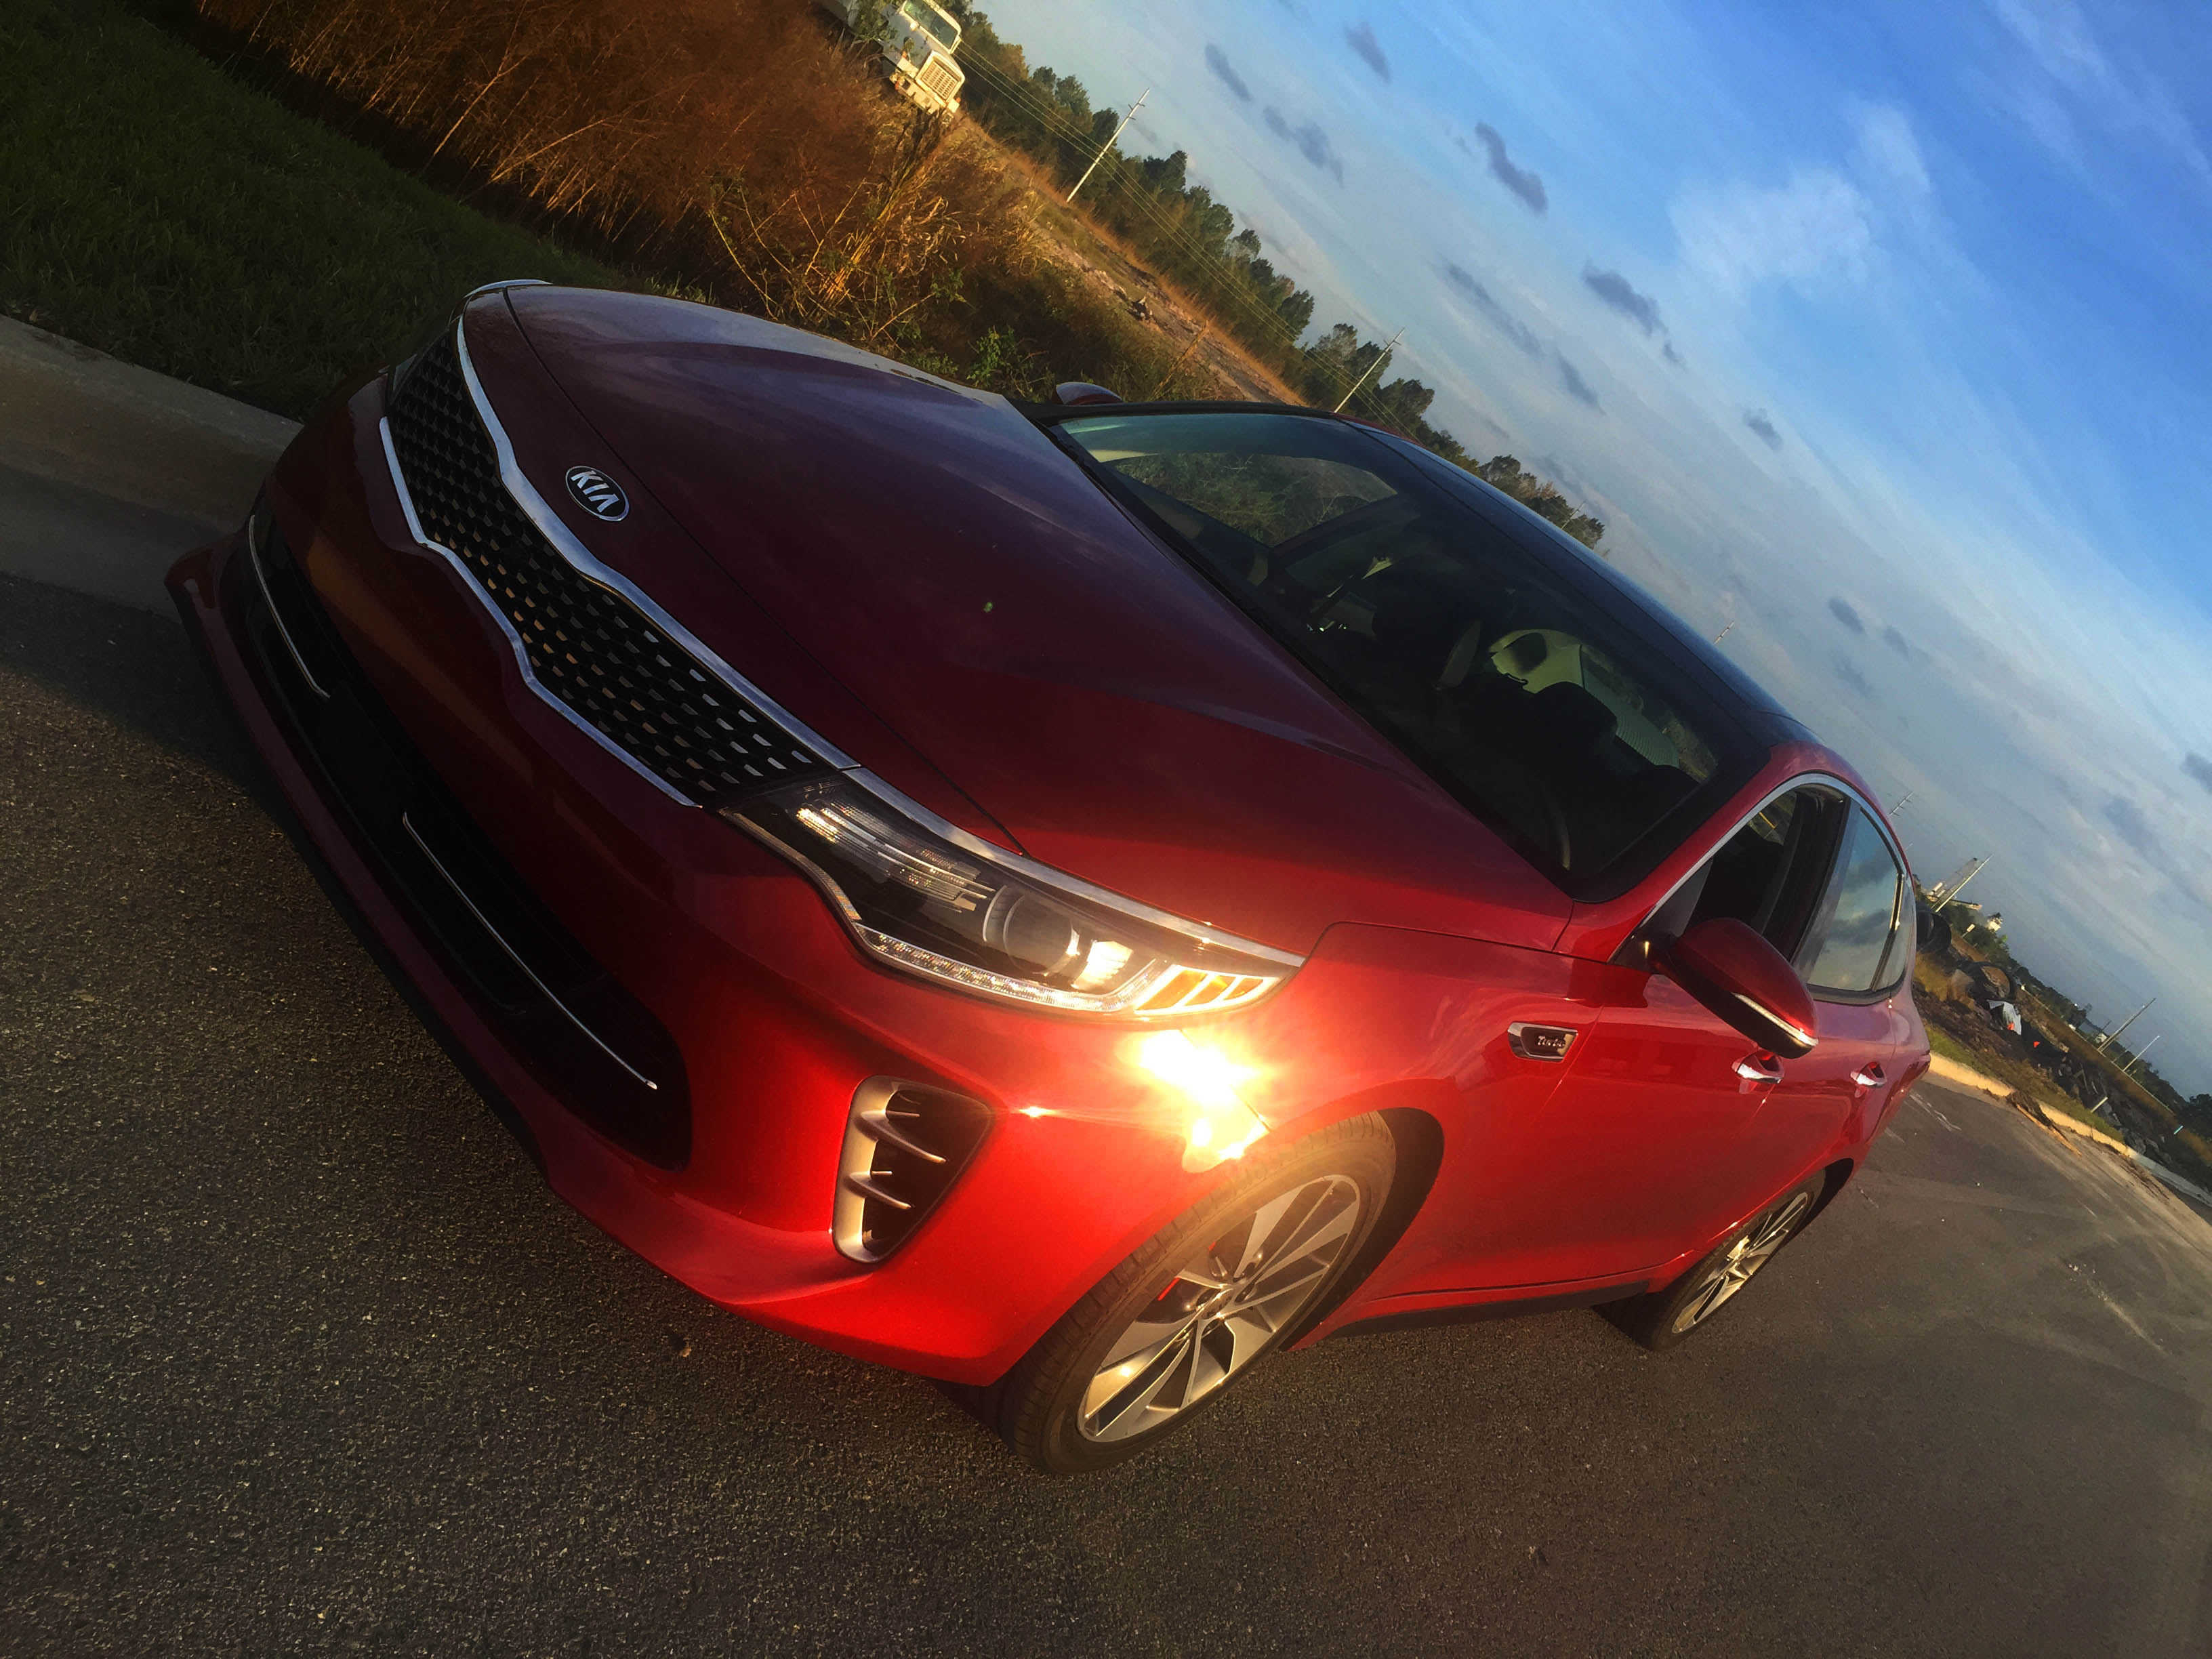 6 Reasons Why I Loved Driving the 2016 Kia Optima SX Turbo